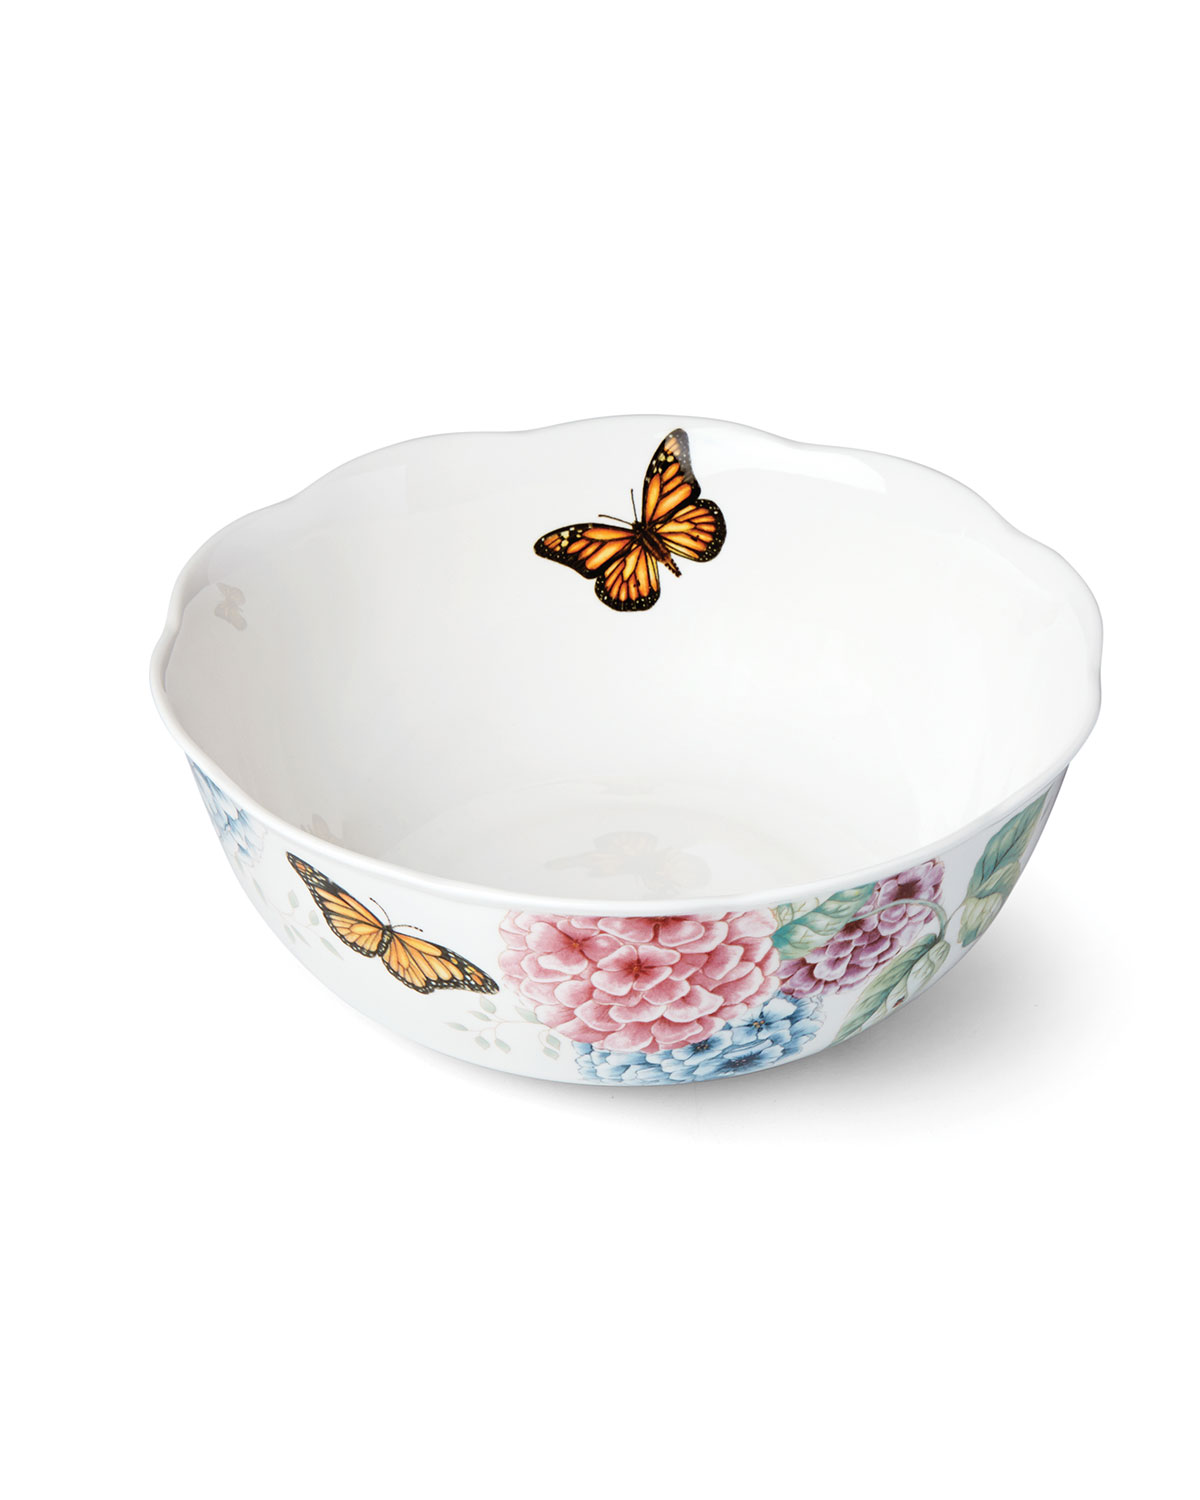 Lenoxbutterfly Meadow Serving Bowl